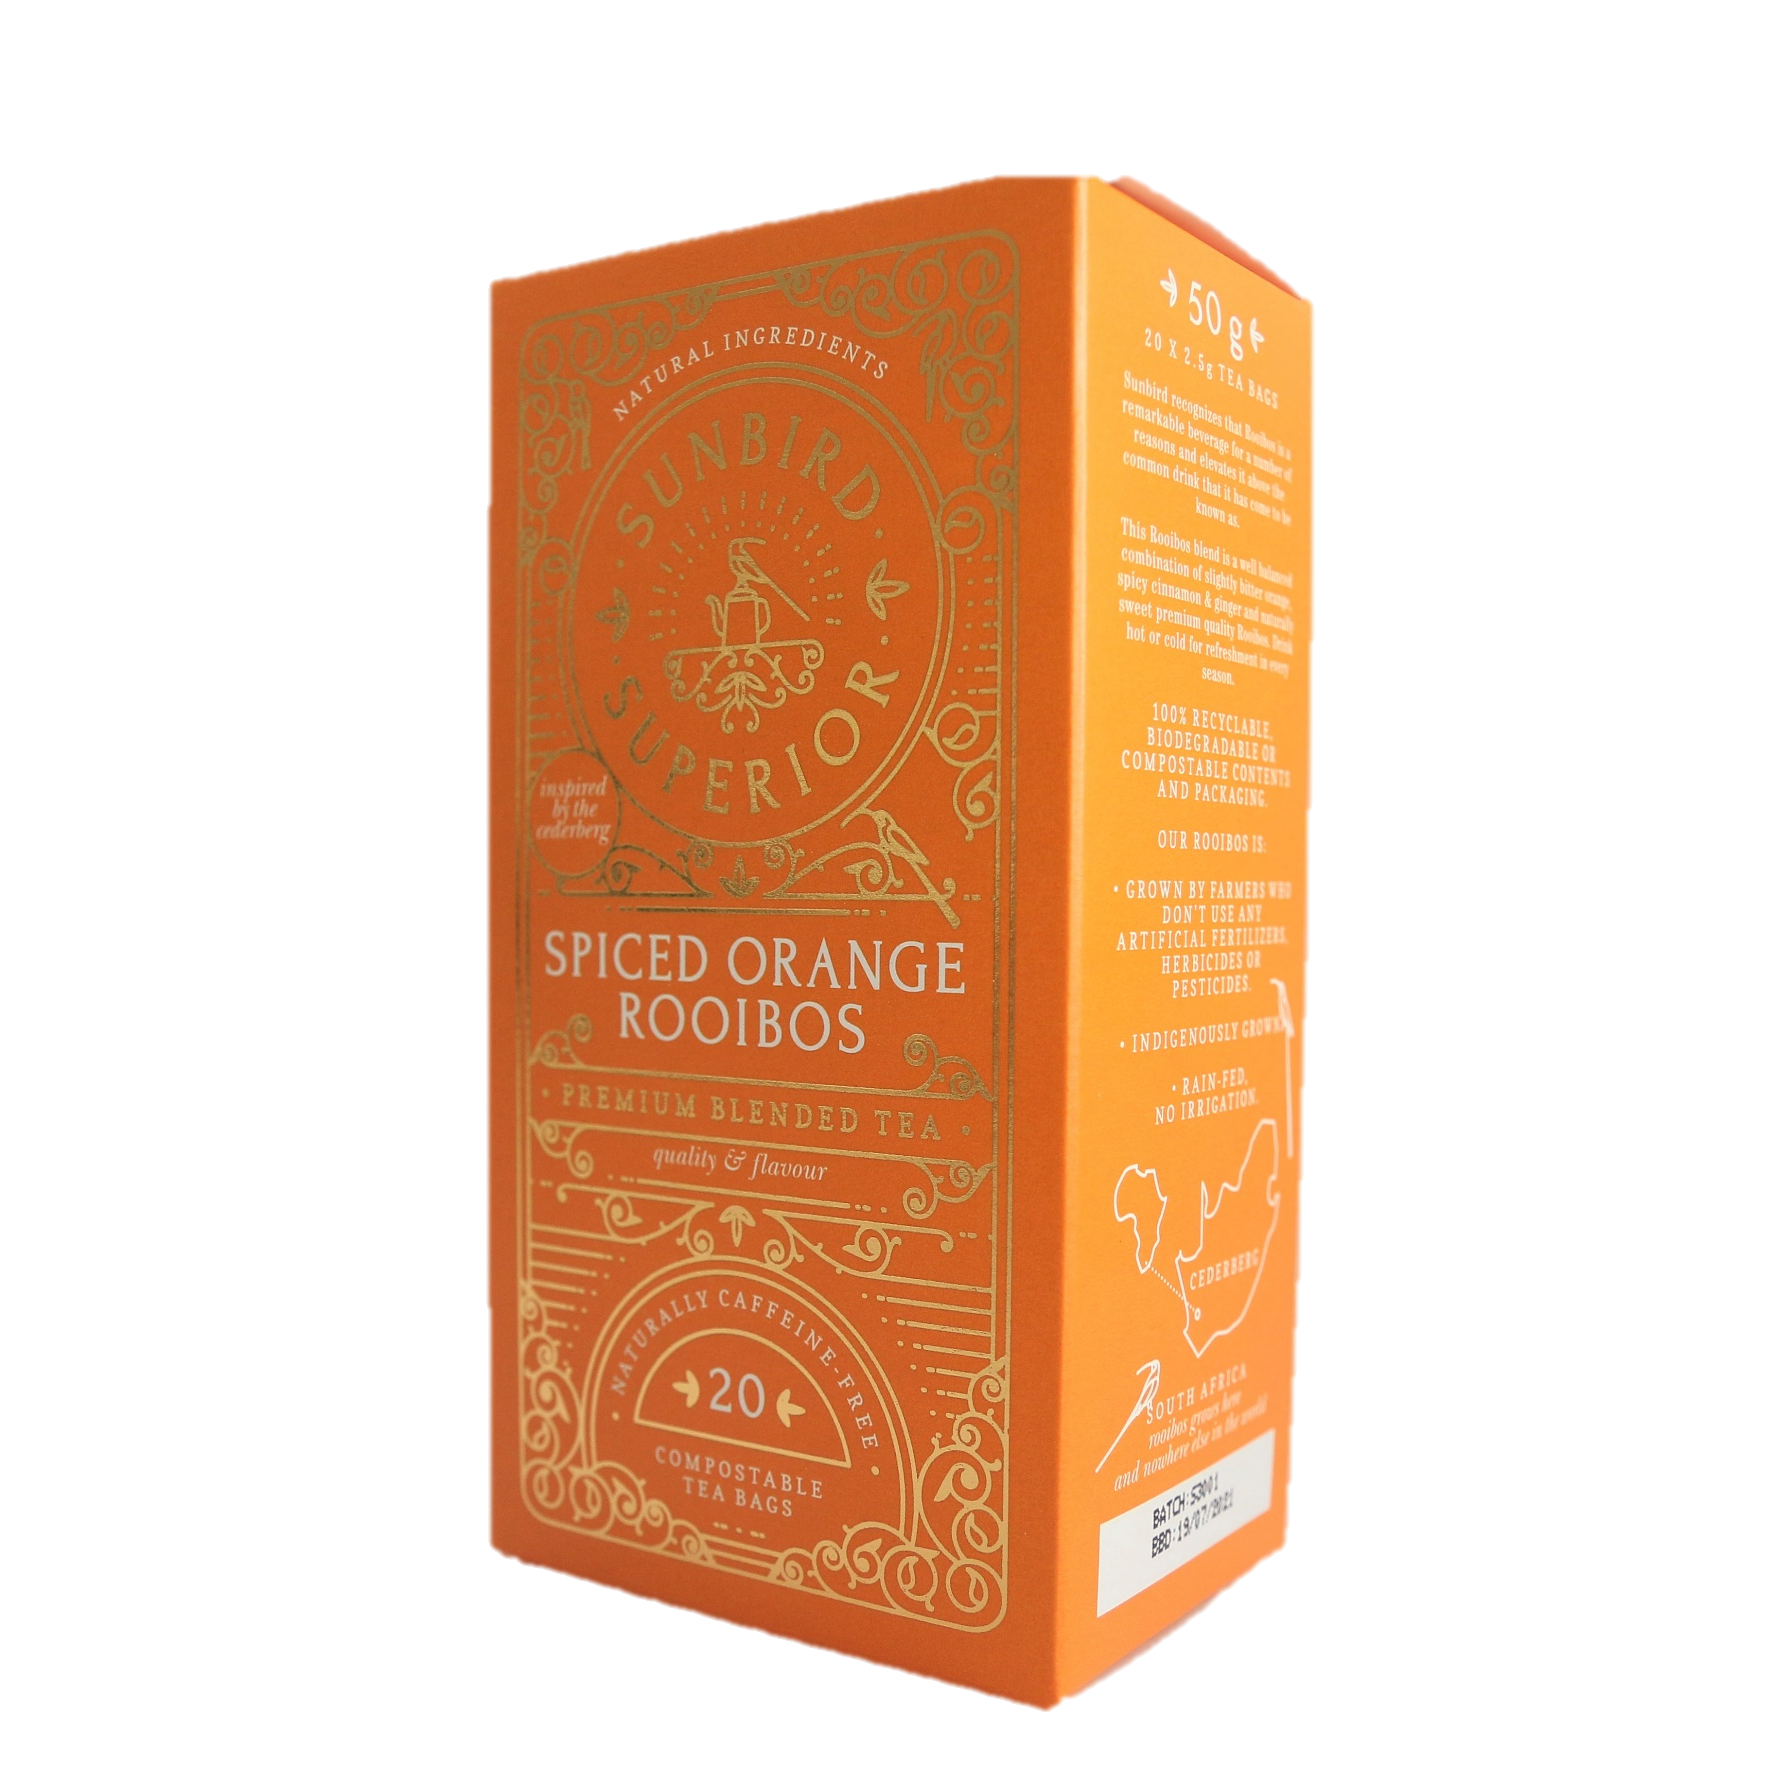 Sunbird Superior - Spiced Orange Rooibos - 20 Compostable Teabags - 50g